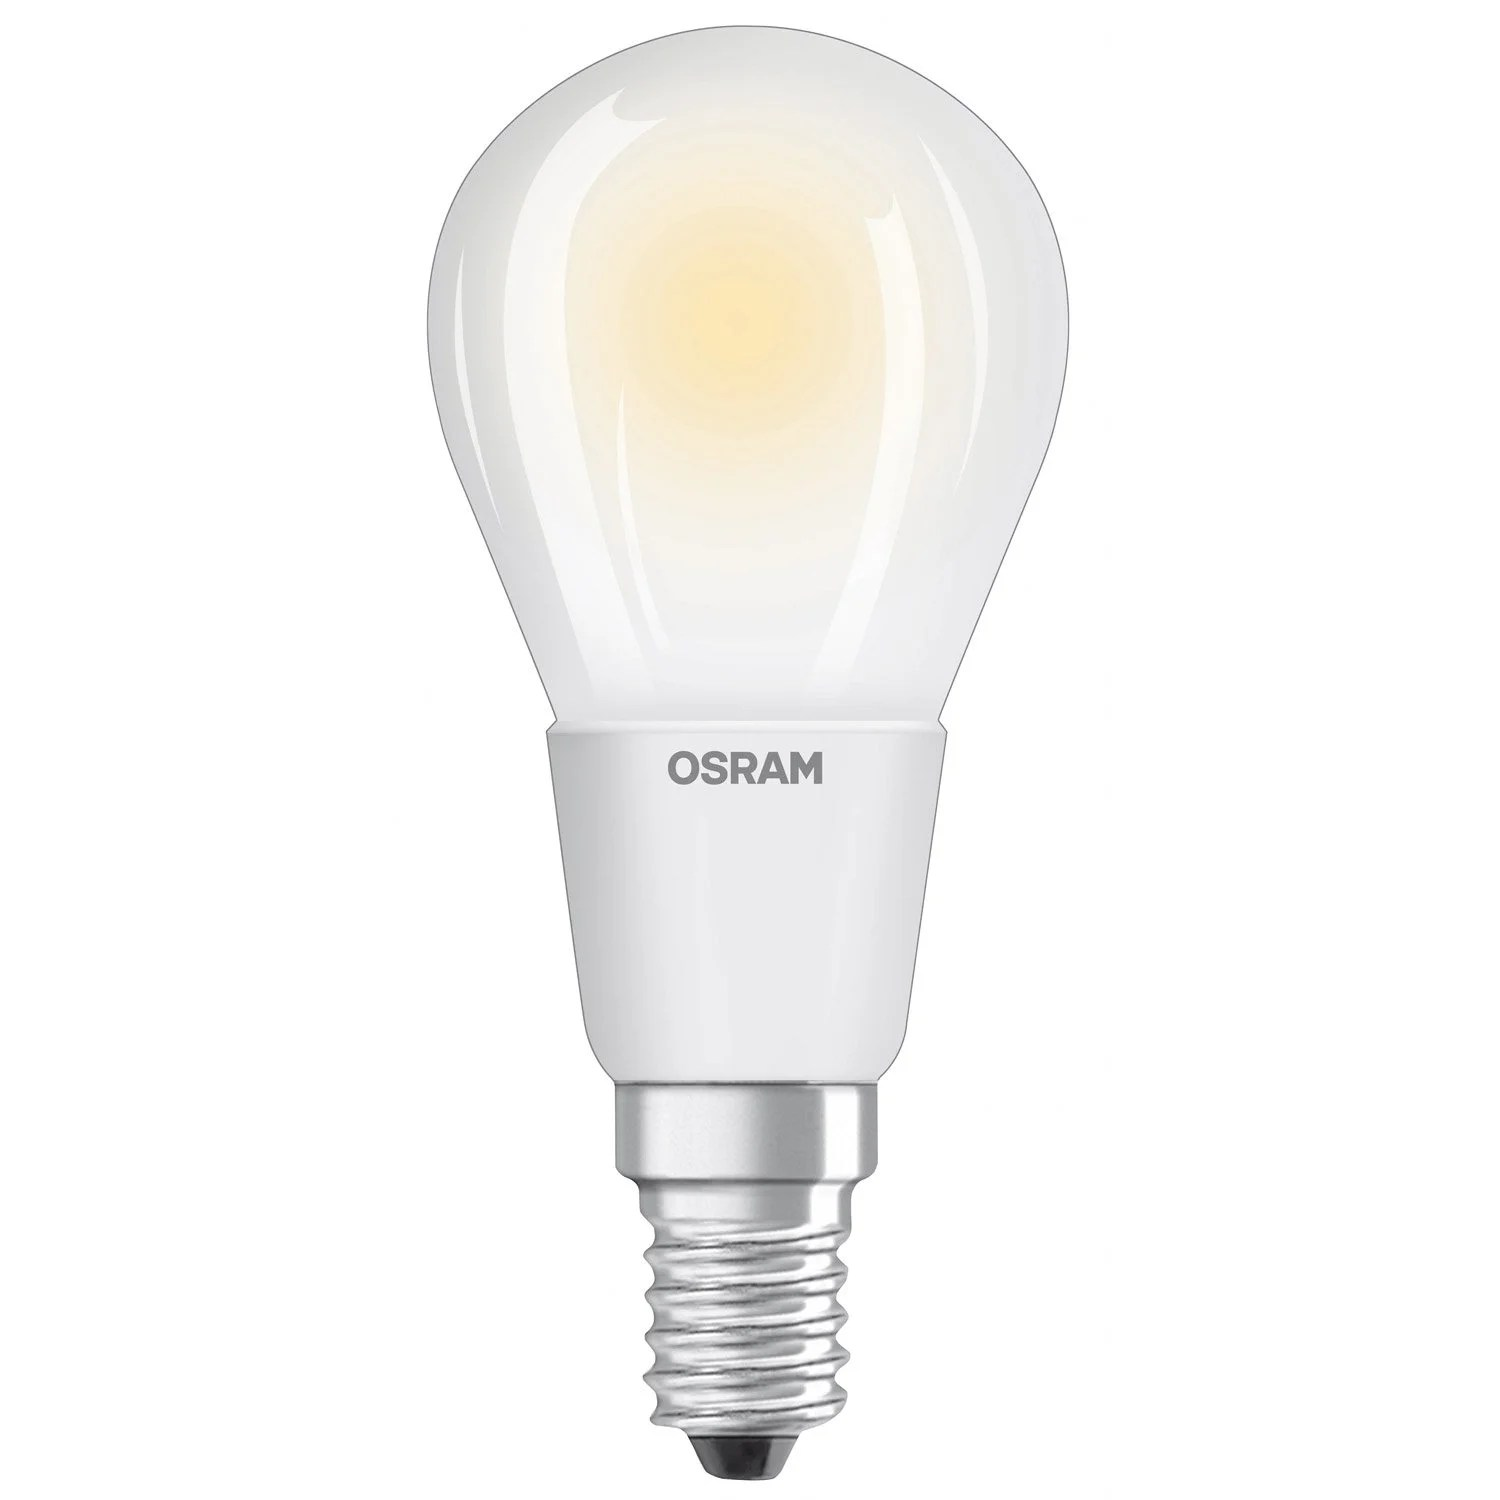 Dimbare Led Spots Dimbare Led Lamp E14 5w Round 470lm Equiv 40w 2700k Osram